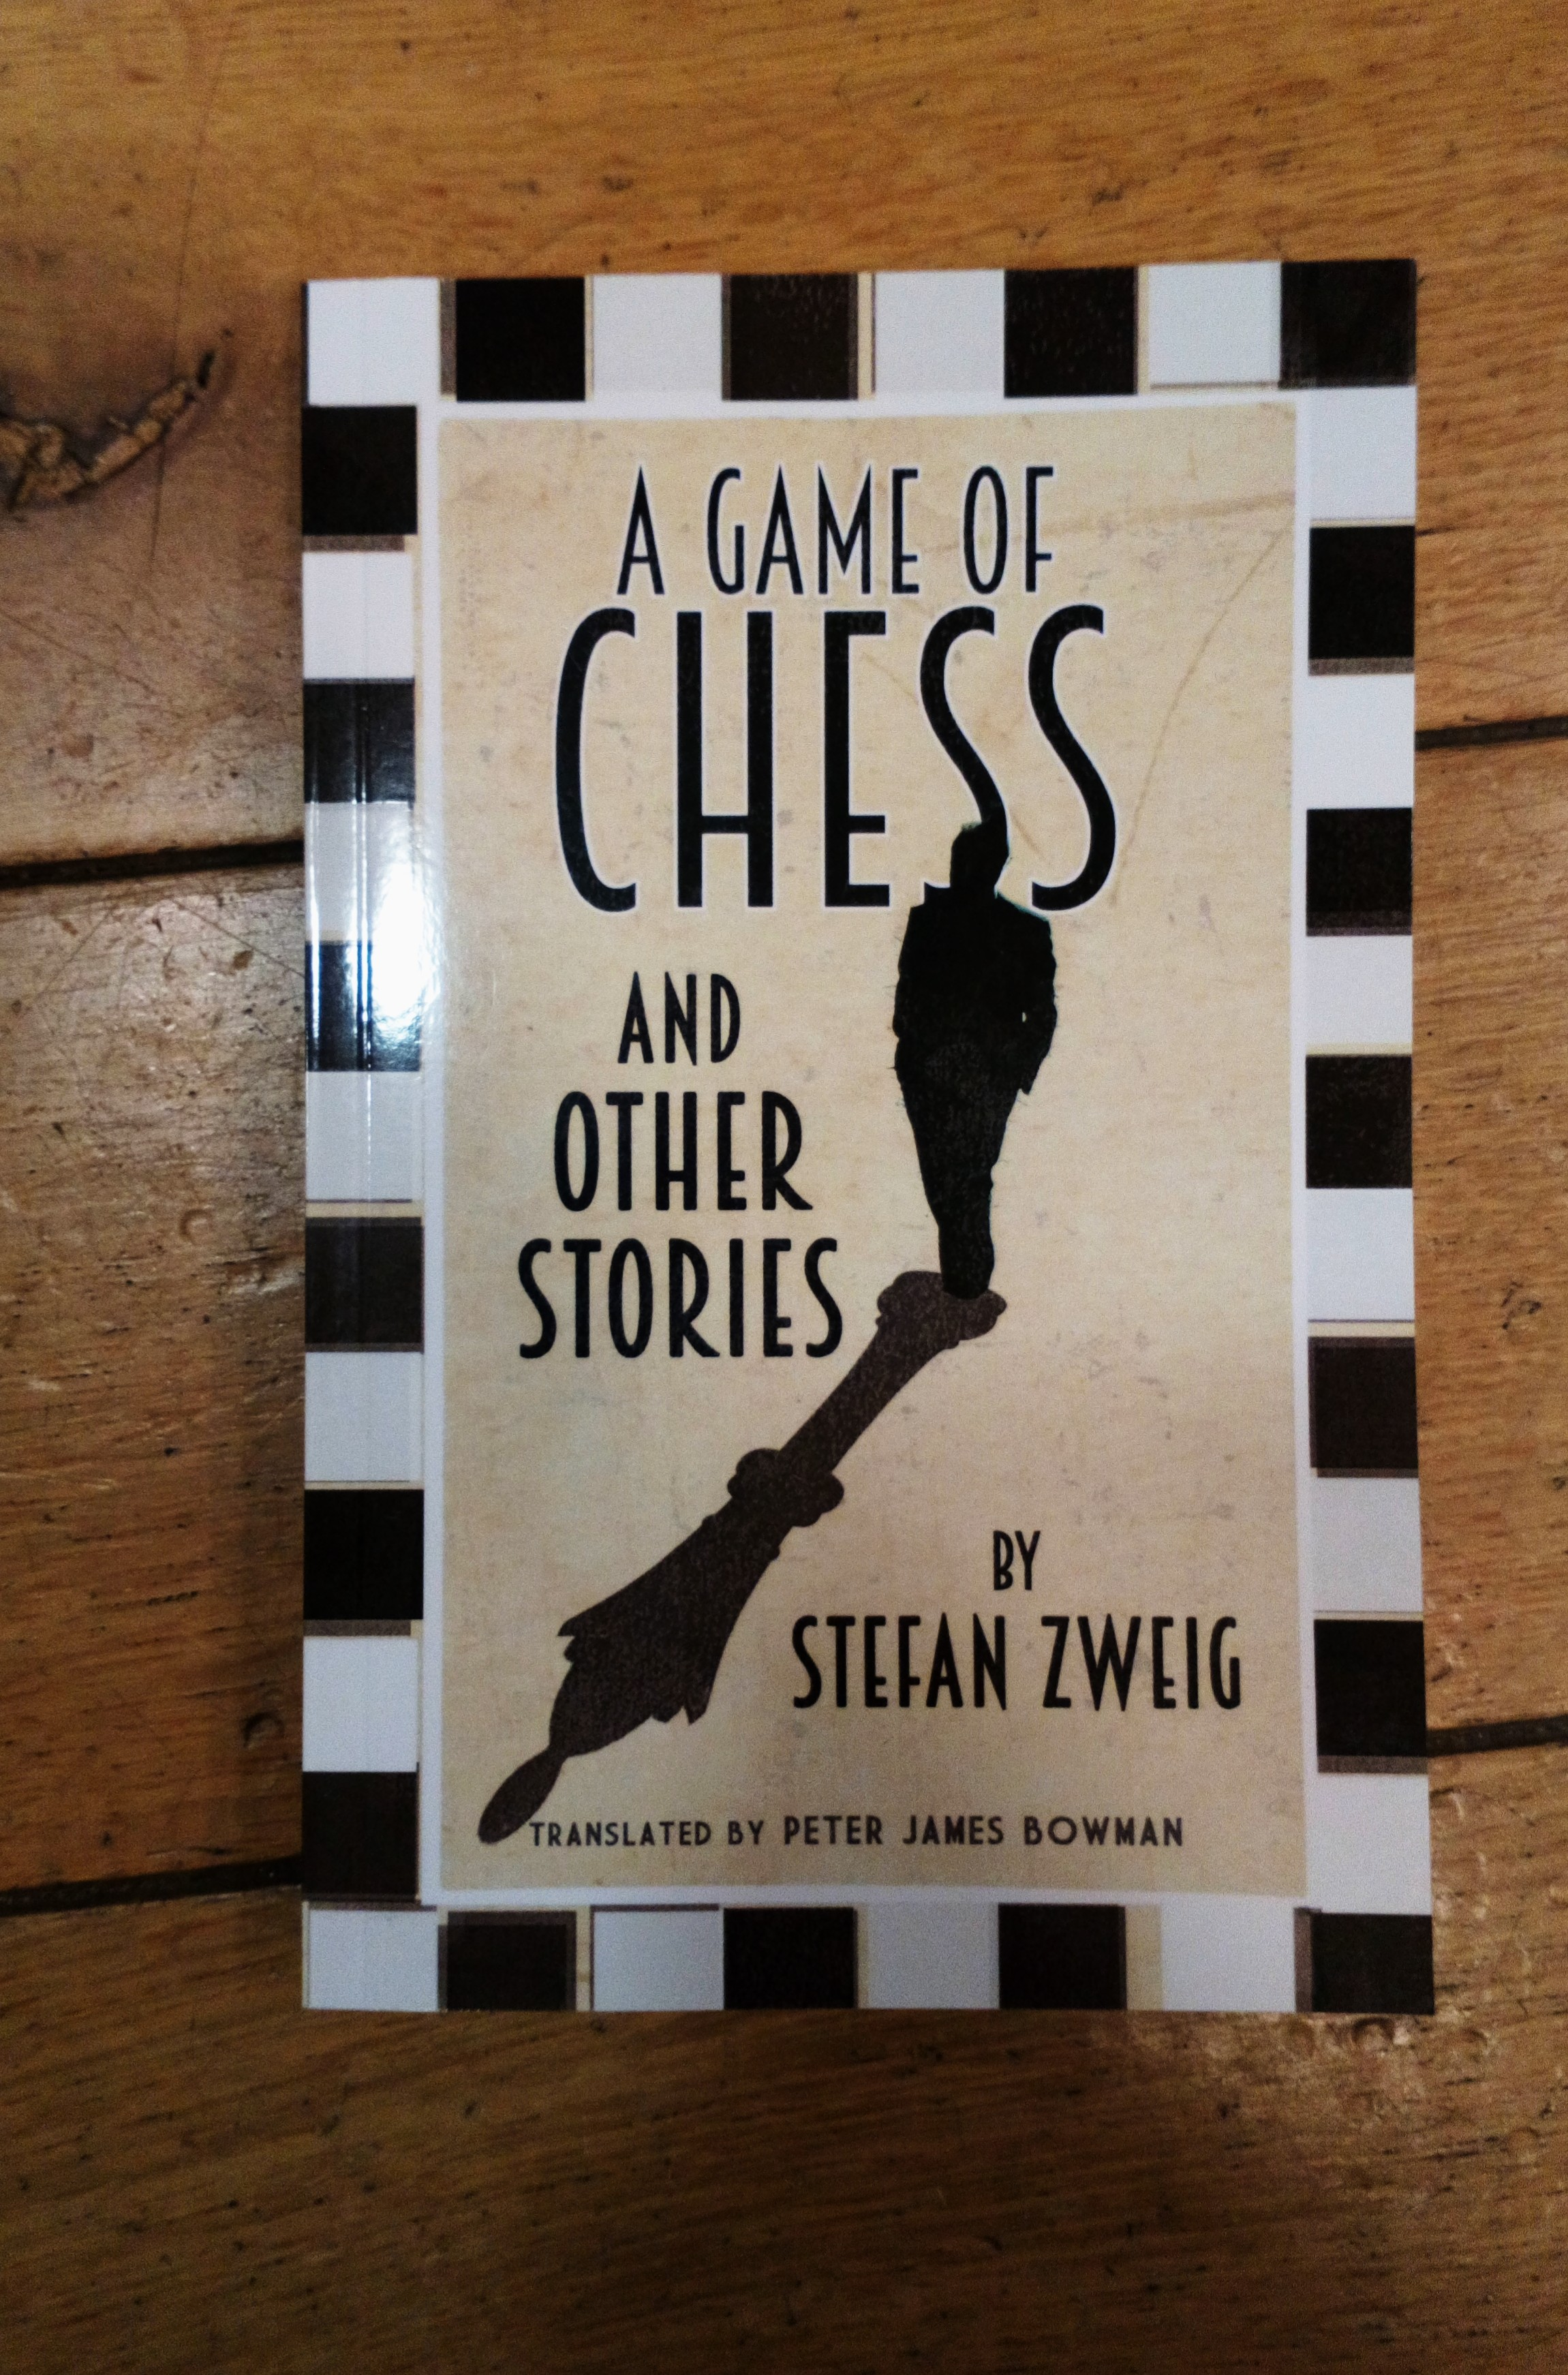 Image of Reading Group – A Game of Chess and Other Stories